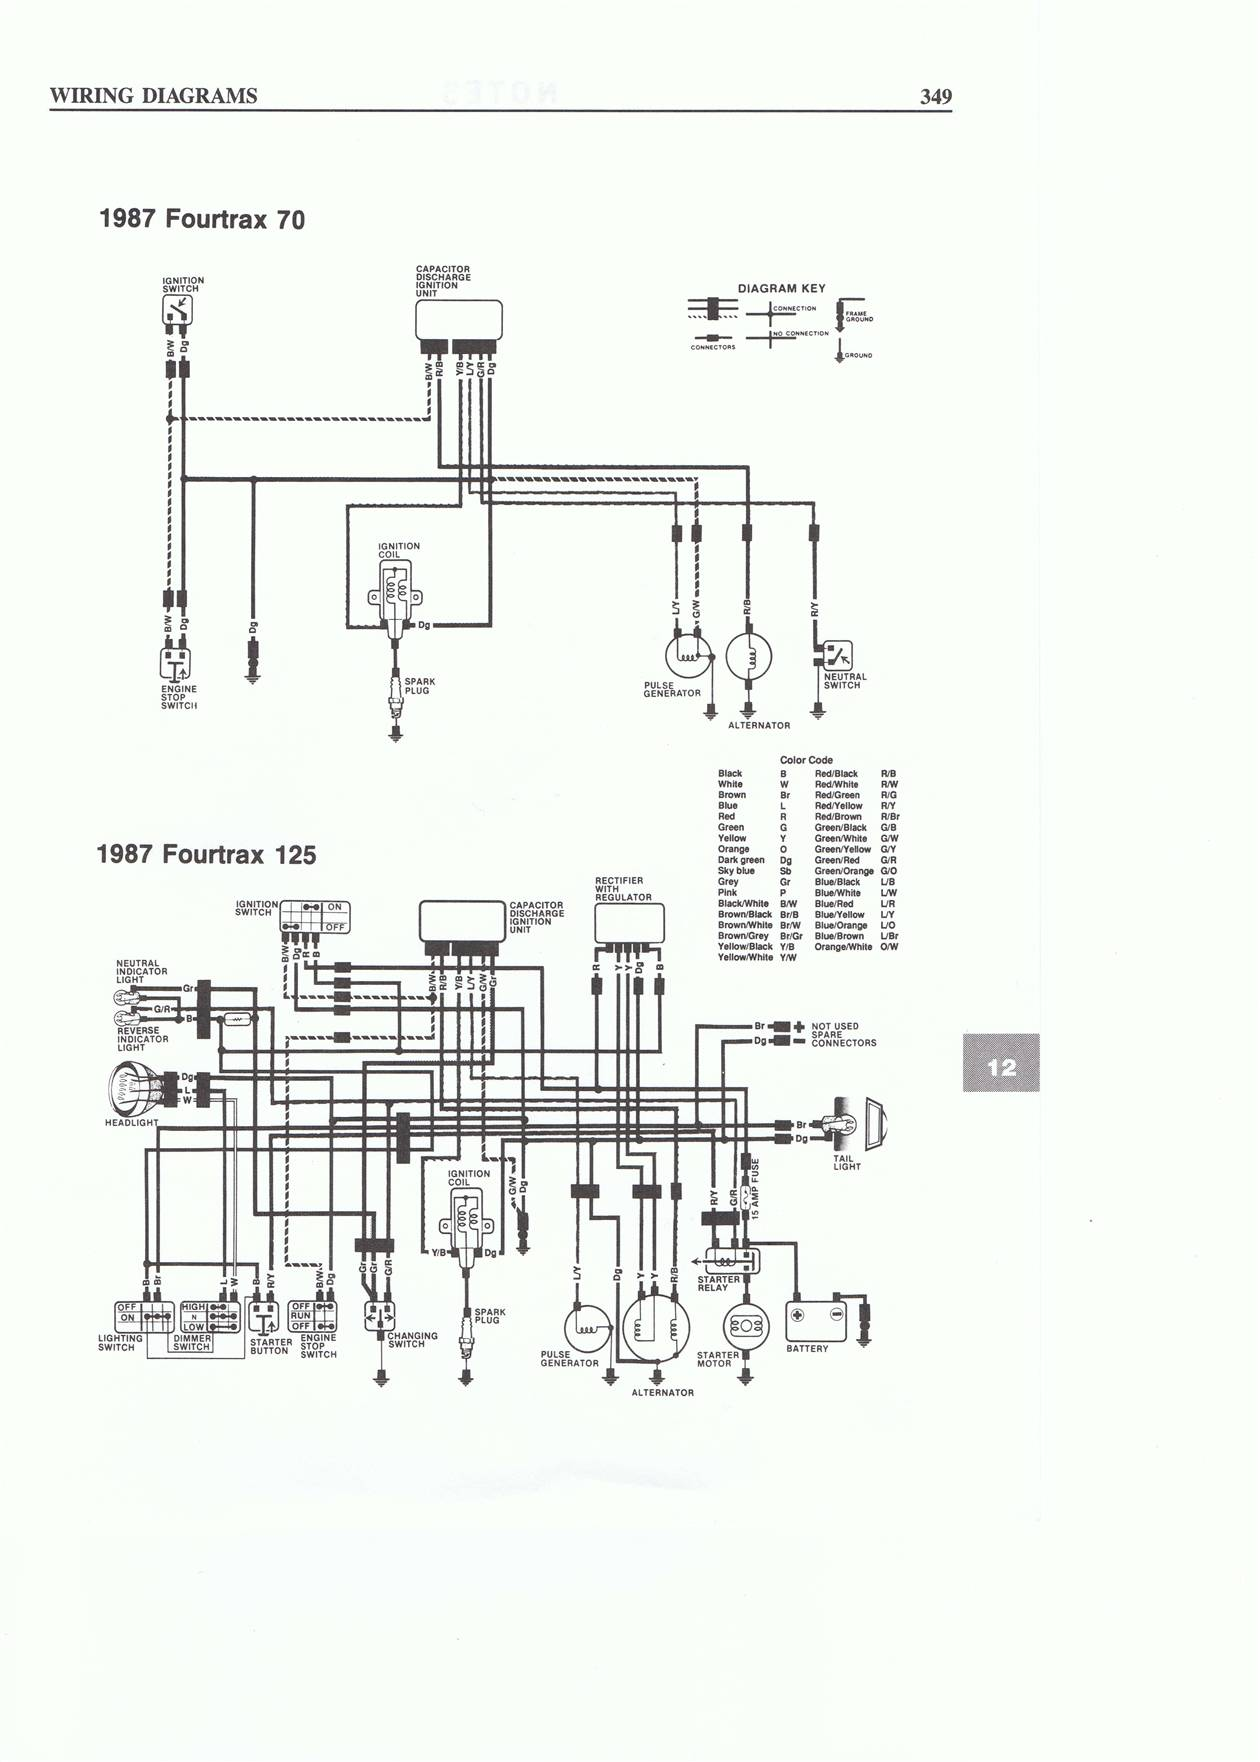 yy50qt 6 wiring diagram repair manual  yy50qt 6 wiring diagram #4